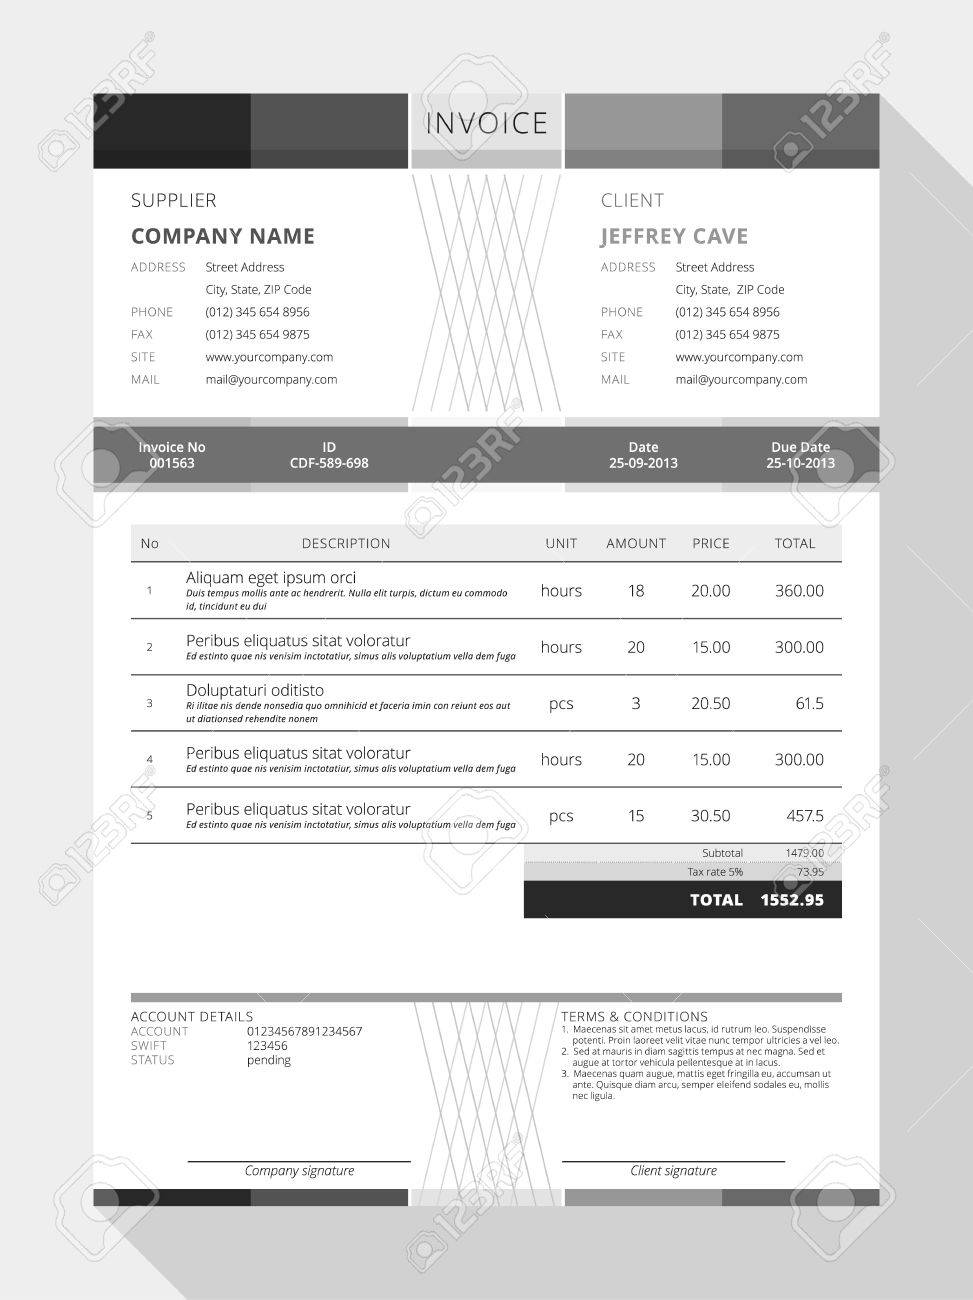 Amatospizzaus  Marvellous Design An Invoice  Professional Graphic Design Invoice  With Fetching Vector Customizable Invoice Form Template Design Vector   Design An Invoice With Delightful How To Layout An Invoice Also Ebay Invoice Software In Addition Sales Invoice Receipt And Excel Sales Invoice Template As Well As Invoice Templates Free Uk Additionally Free Pdf Invoice Generator From Happytomco With Amatospizzaus  Fetching Design An Invoice  Professional Graphic Design Invoice  With Delightful Vector Customizable Invoice Form Template Design Vector   Design An Invoice And Marvellous How To Layout An Invoice Also Ebay Invoice Software In Addition Sales Invoice Receipt From Happytomco